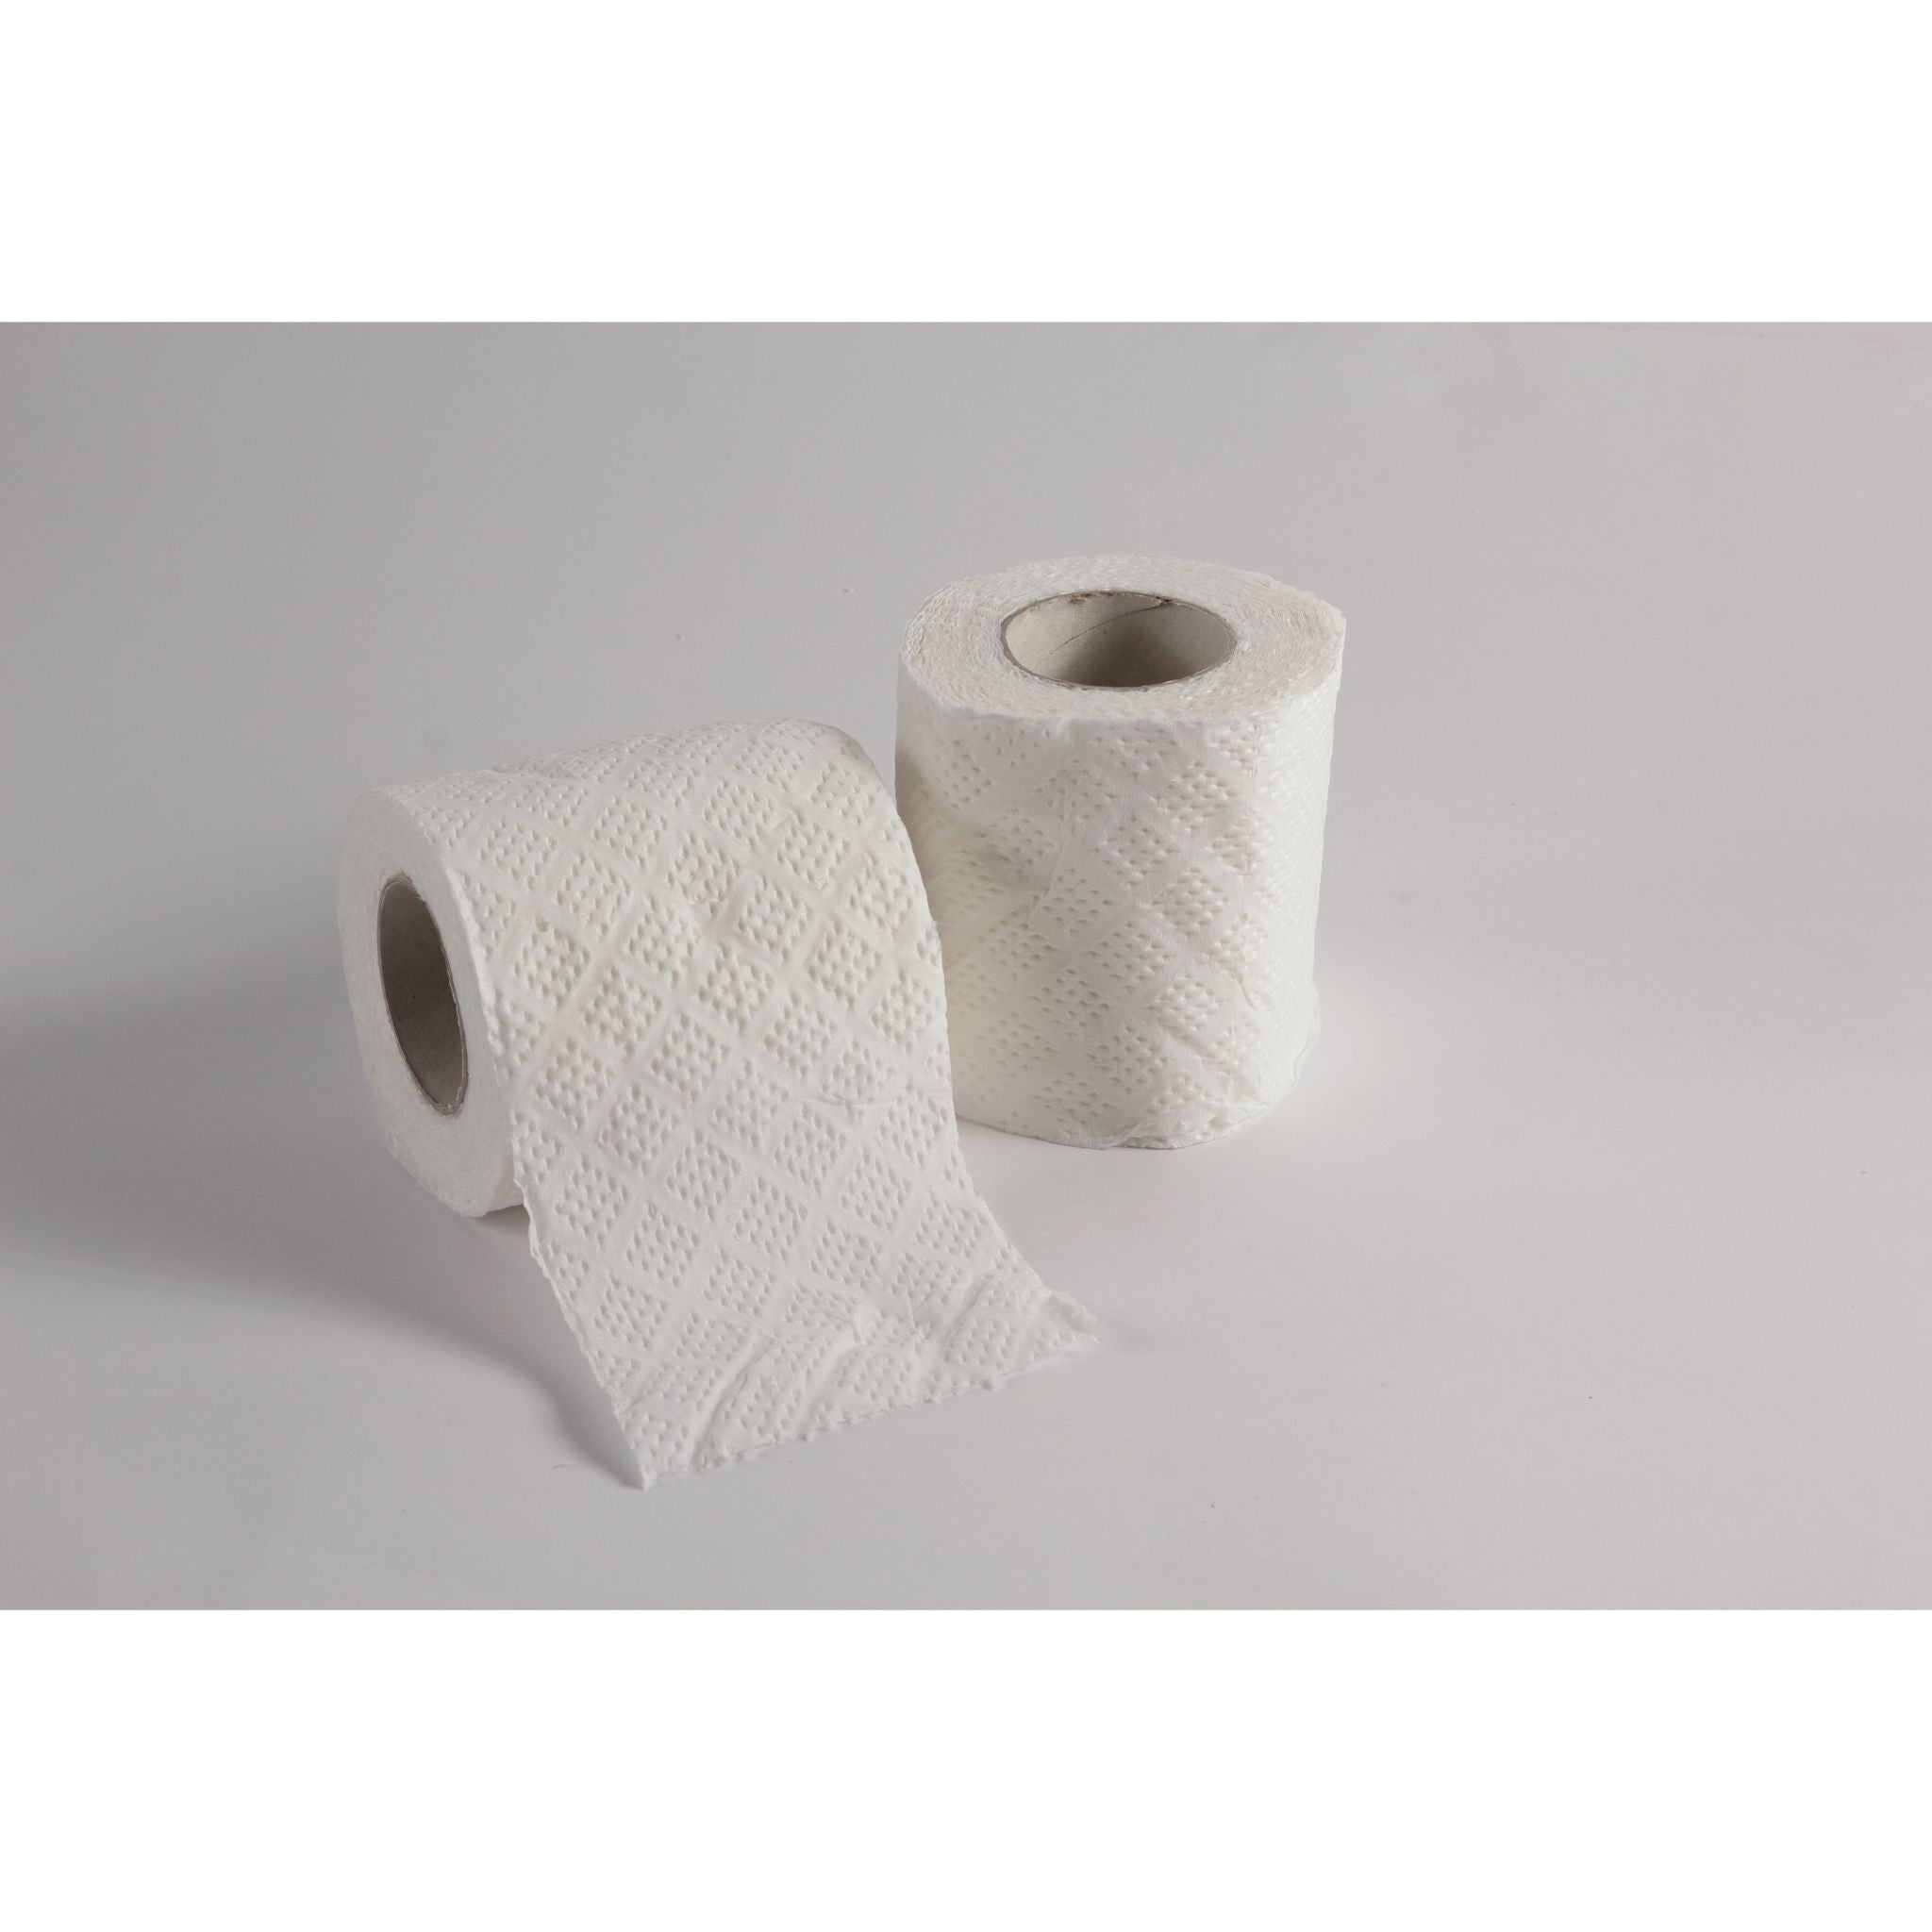 PRIME TOILET ROLL 90 SHEETS 4ROLL*6PKT